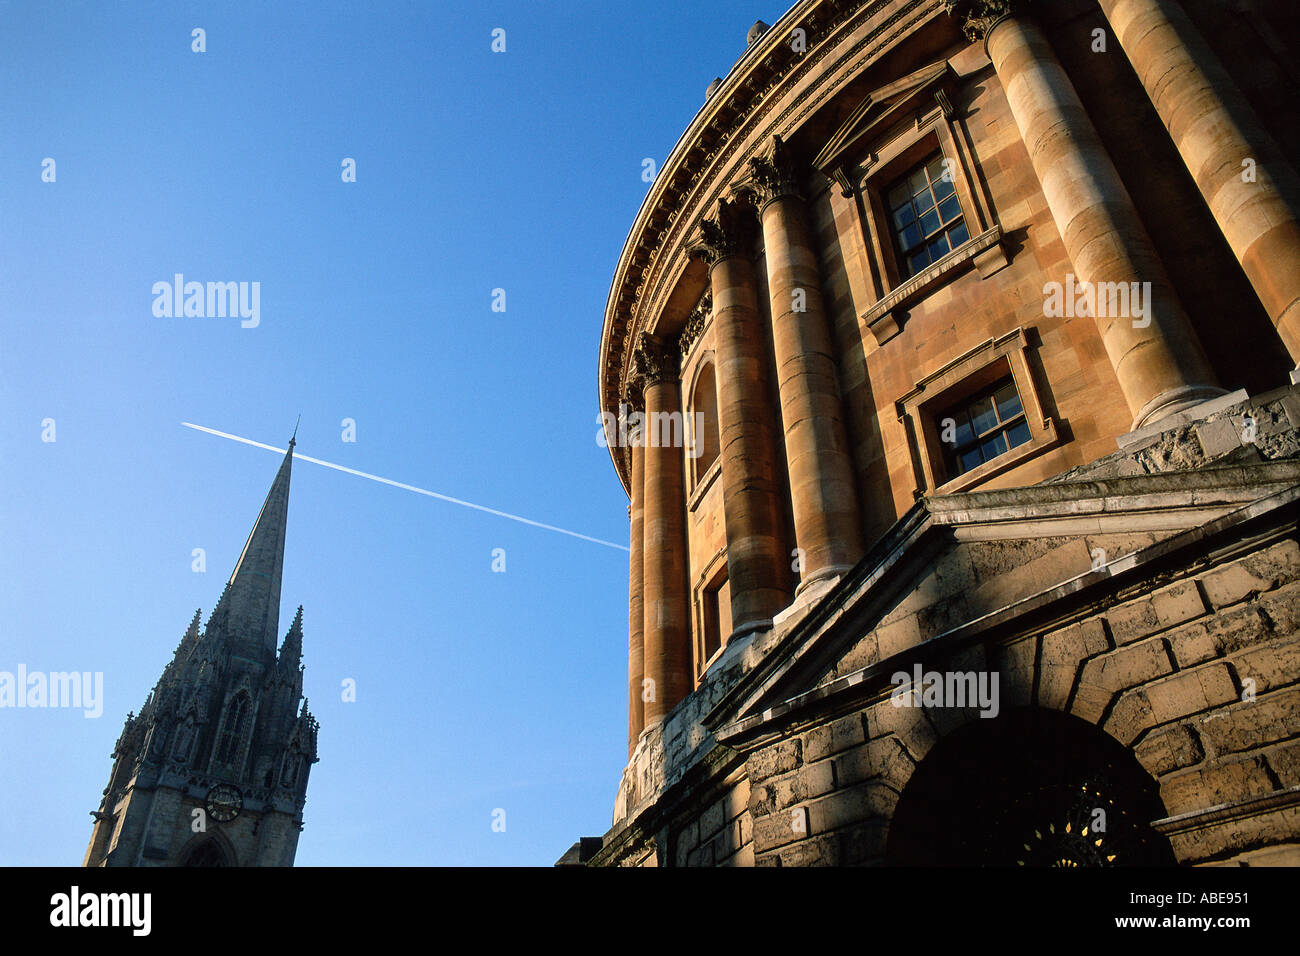 Classical building near spire - Stock Image